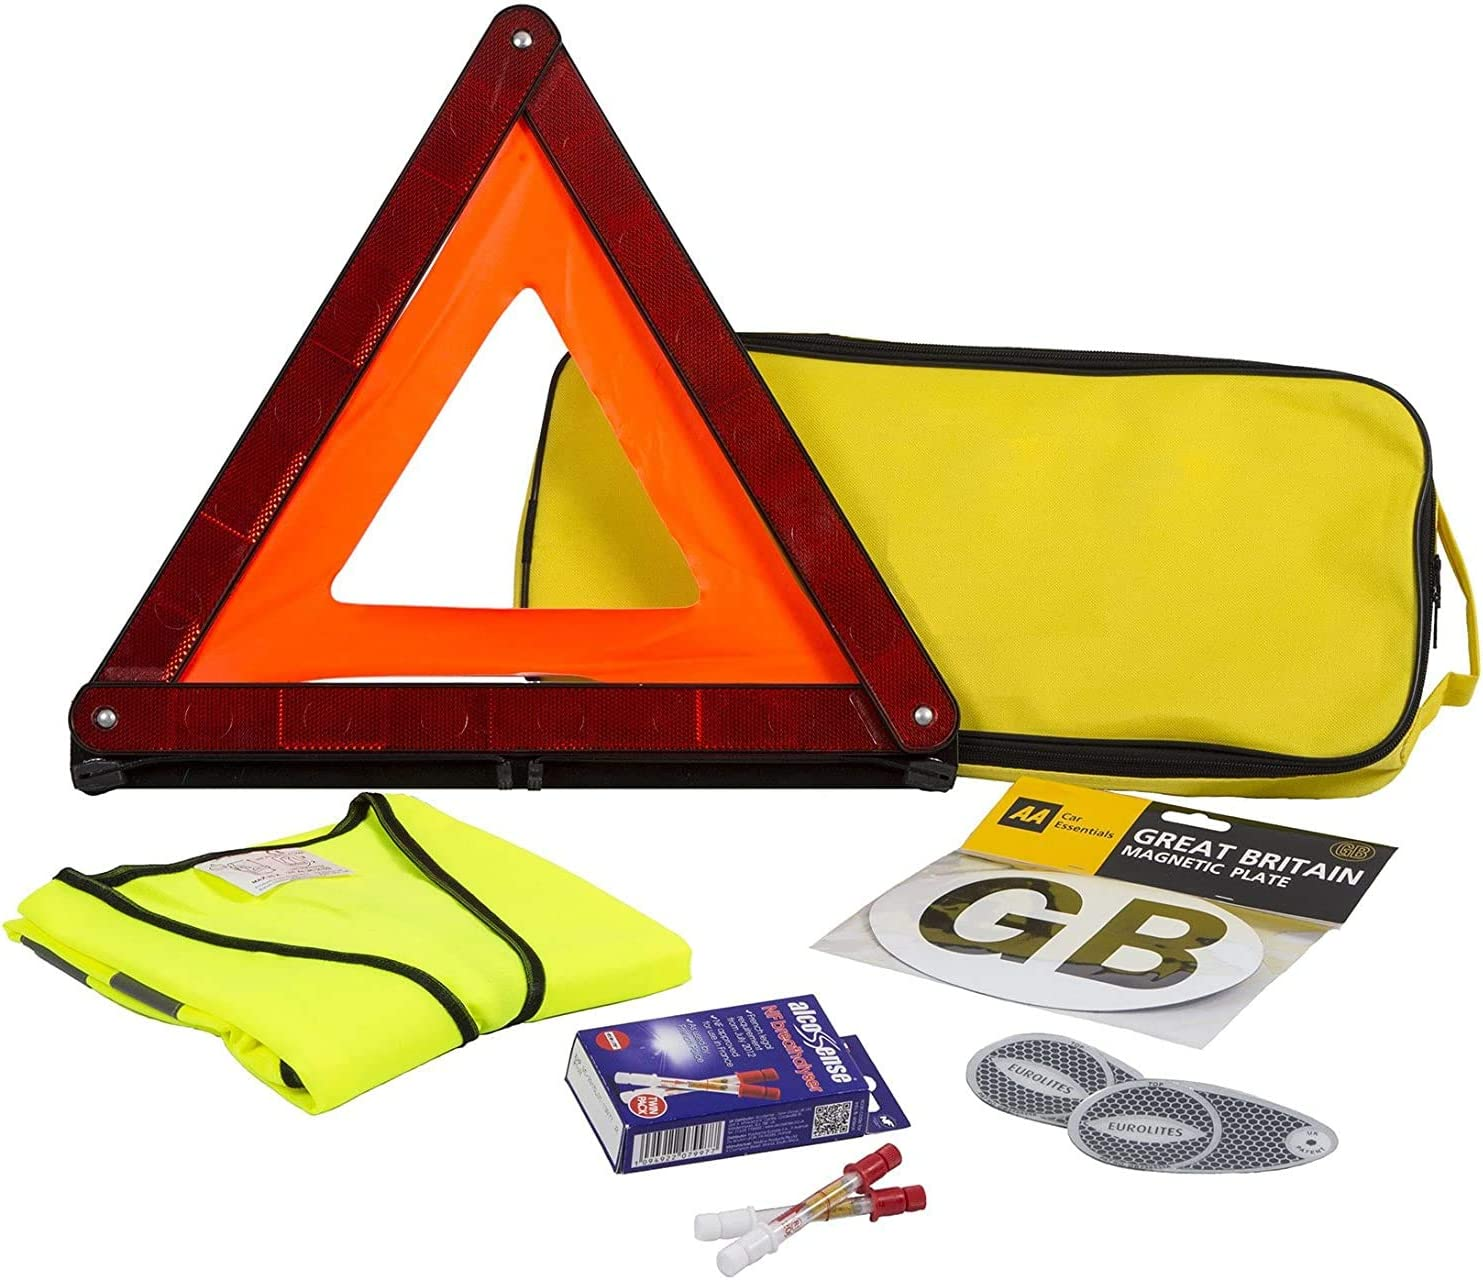 A/&A AA France Travel Kit with Breathalysers